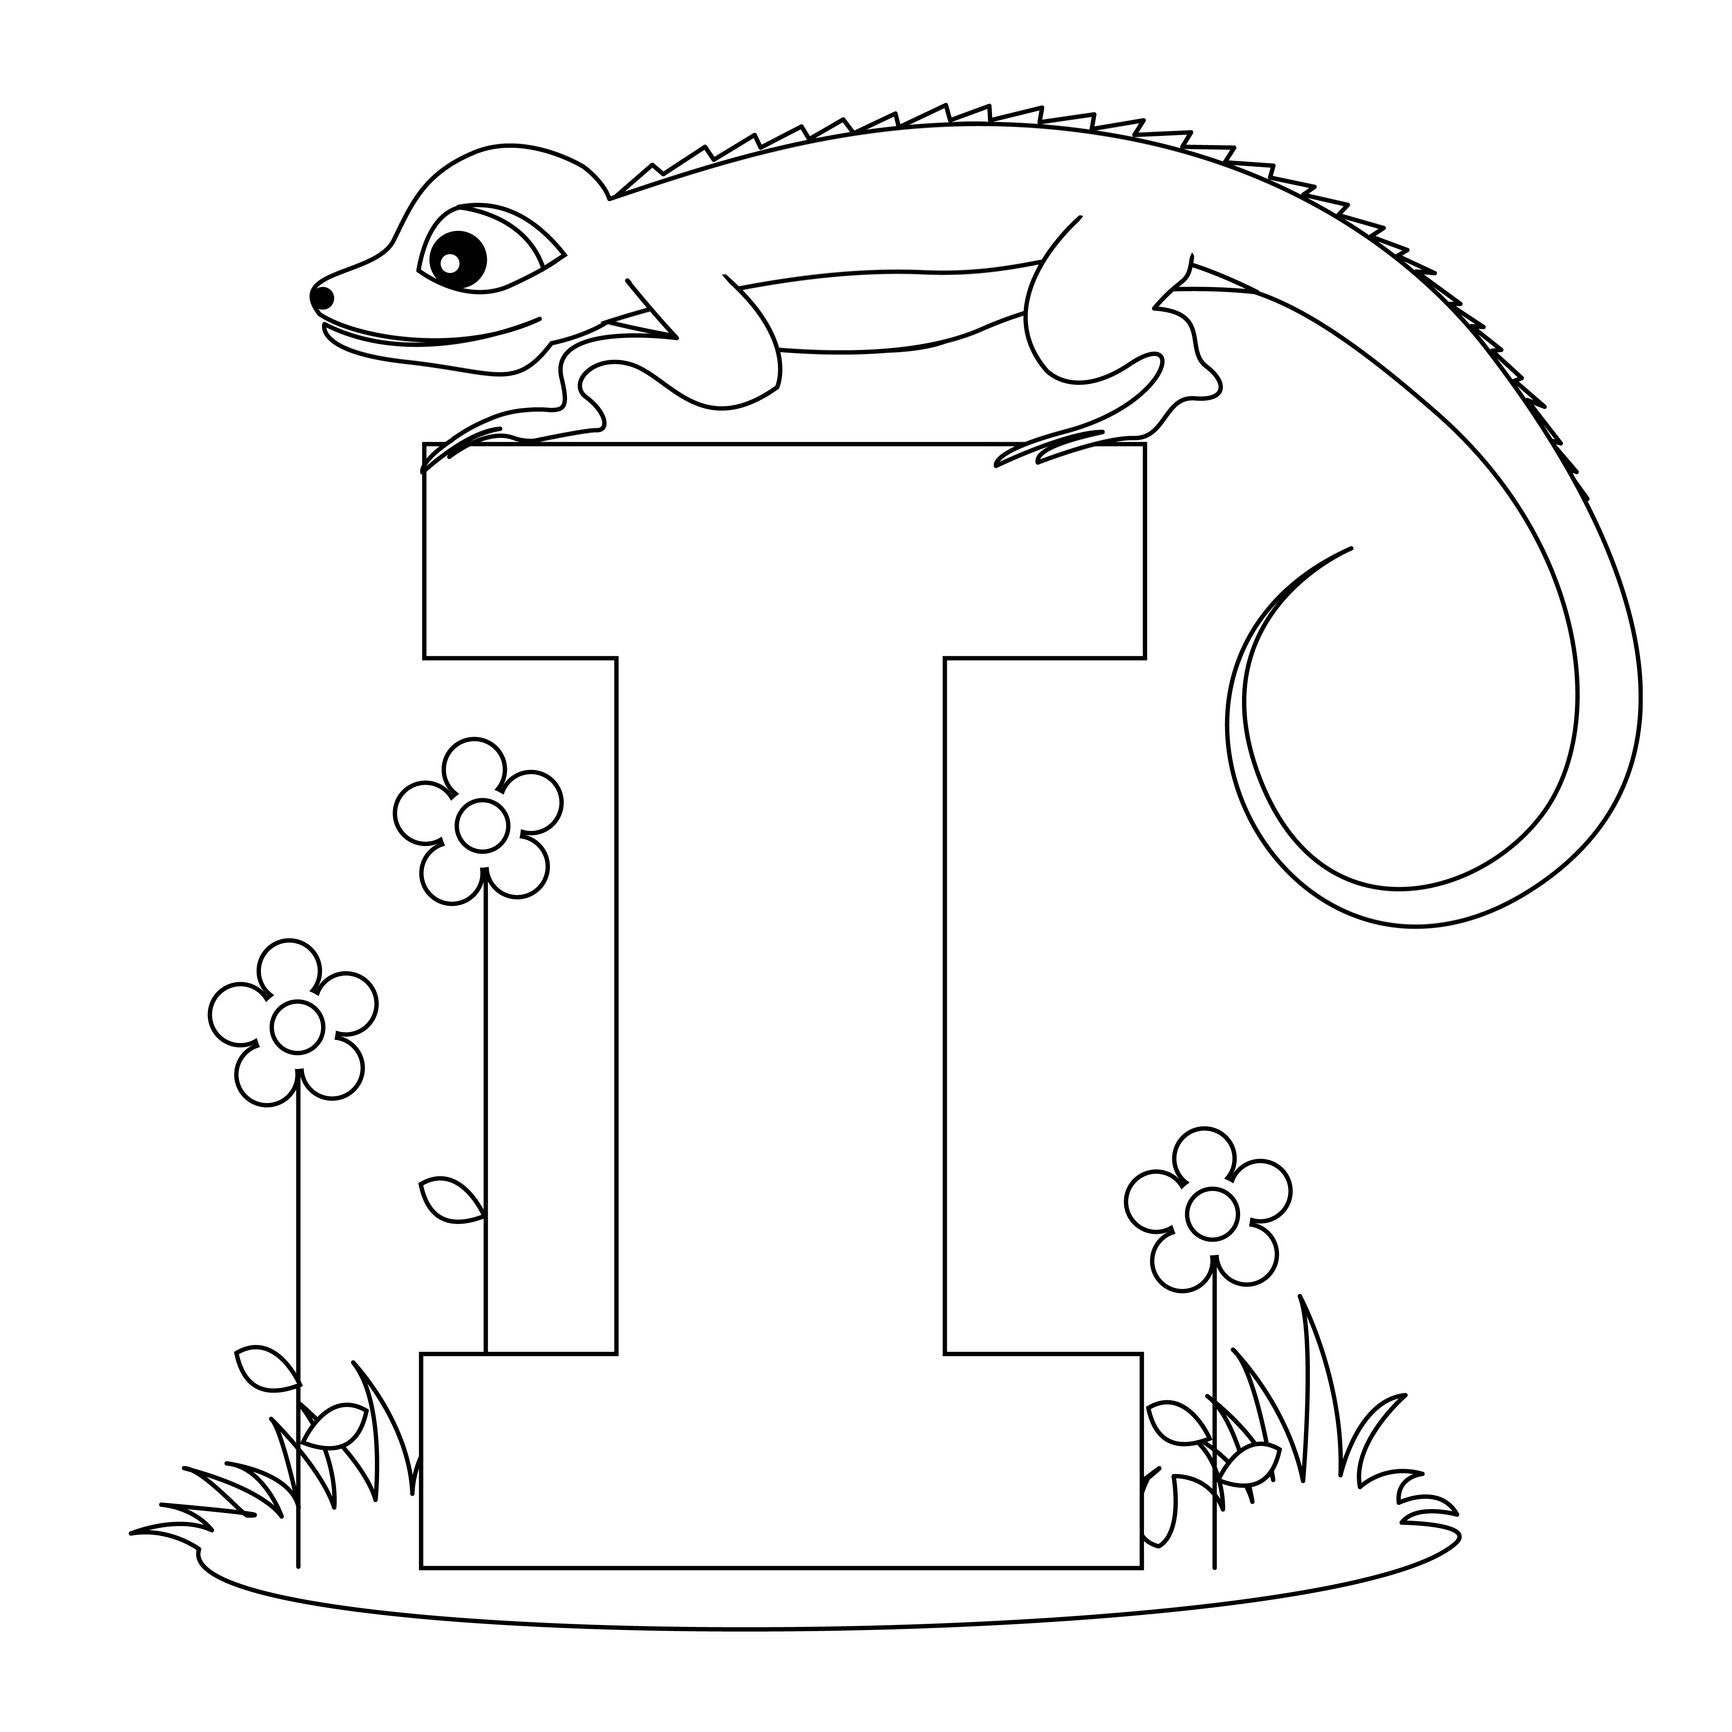 Worksheet Letter I Worksheets Preschool image detail for animal alphabet letter i coloring worksheet from kiboomu worksheets